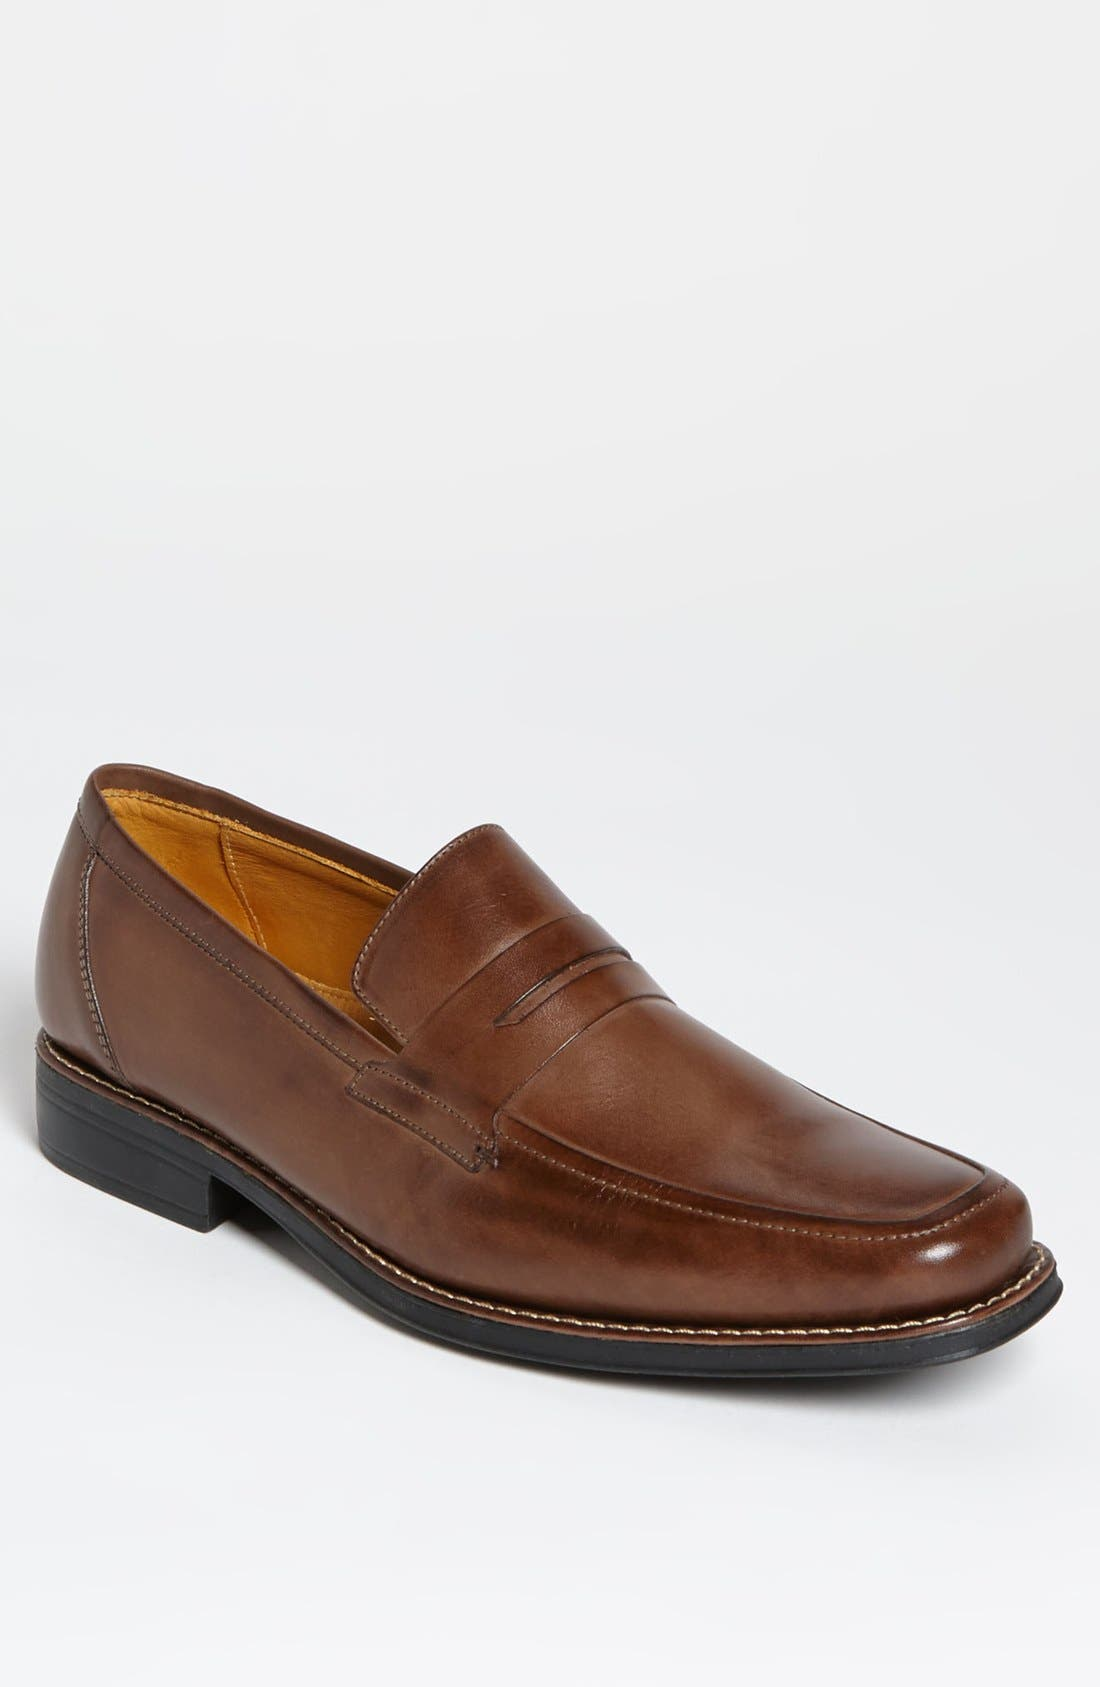 'Stuart' Penny Loafer,                         Main,                         color, Brown